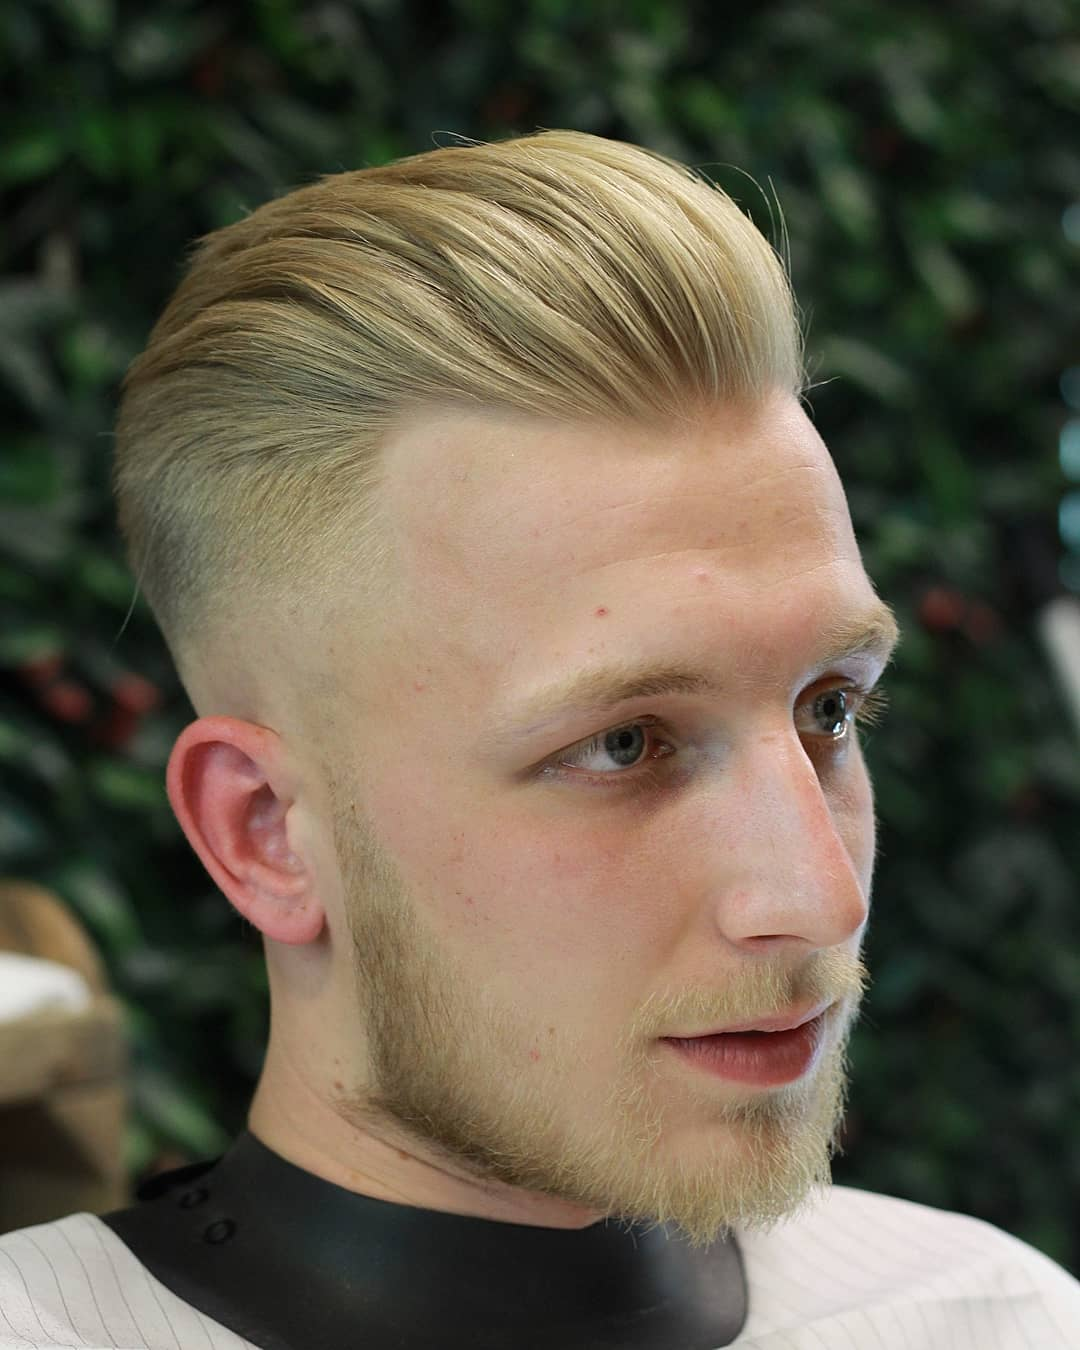 Neat Pomp + short beard